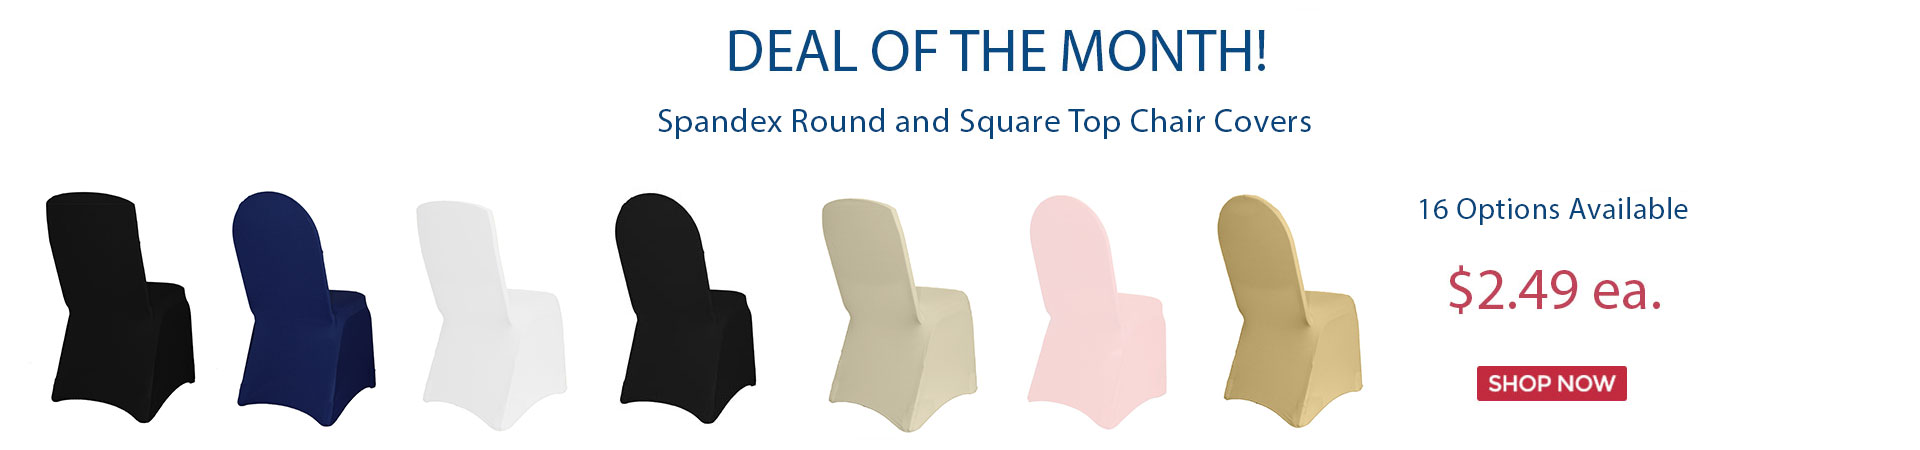 deal of the month chair covers